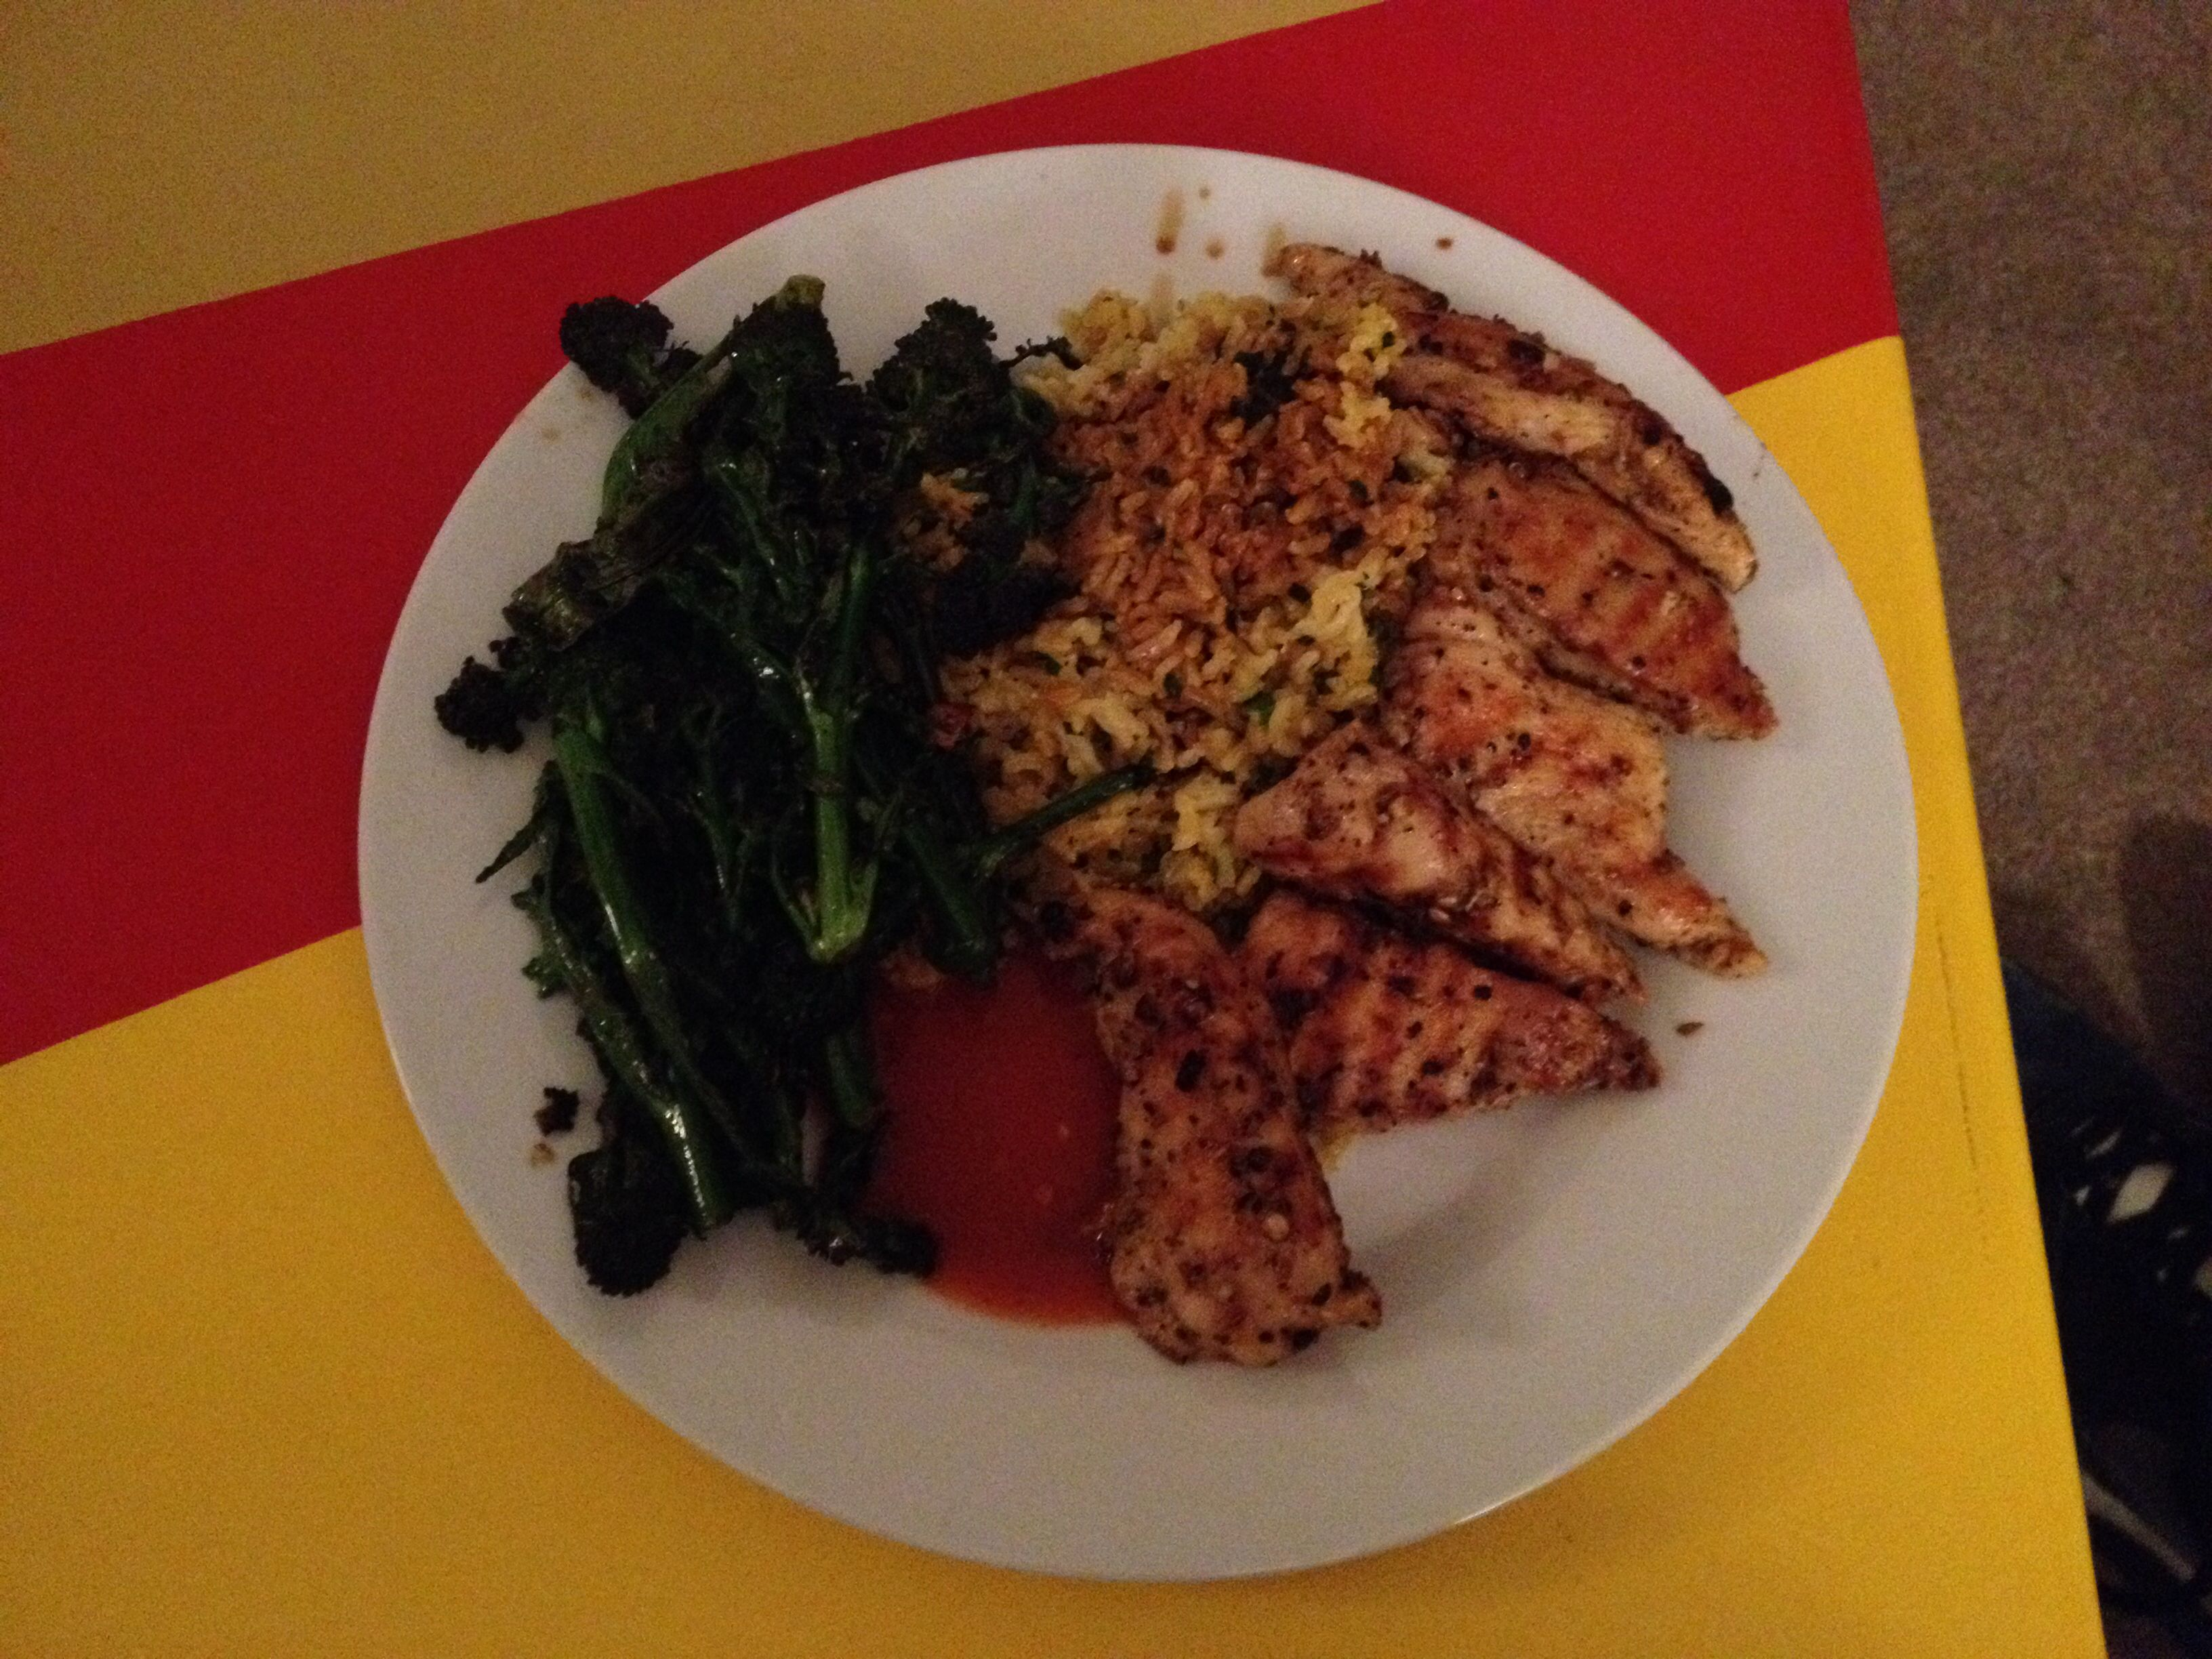 Coconut/turmeric/herby brown rice. Griddled chicken breast. Griddled purple sprouting broccoli.